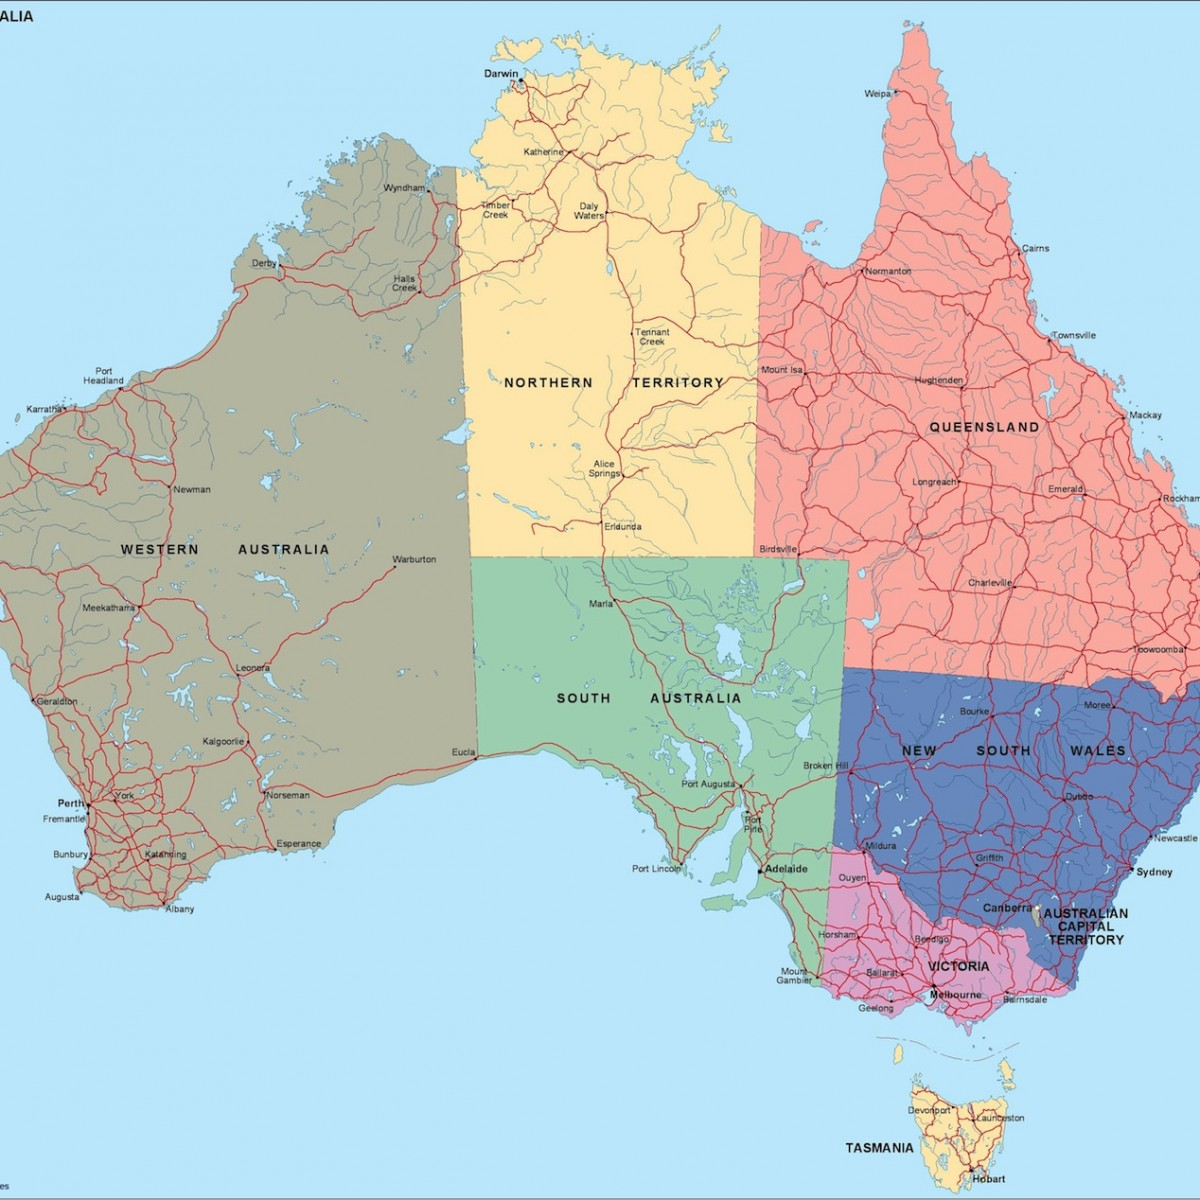 Australia Map Political.Australia Political Map Order And Download Australia Political Map